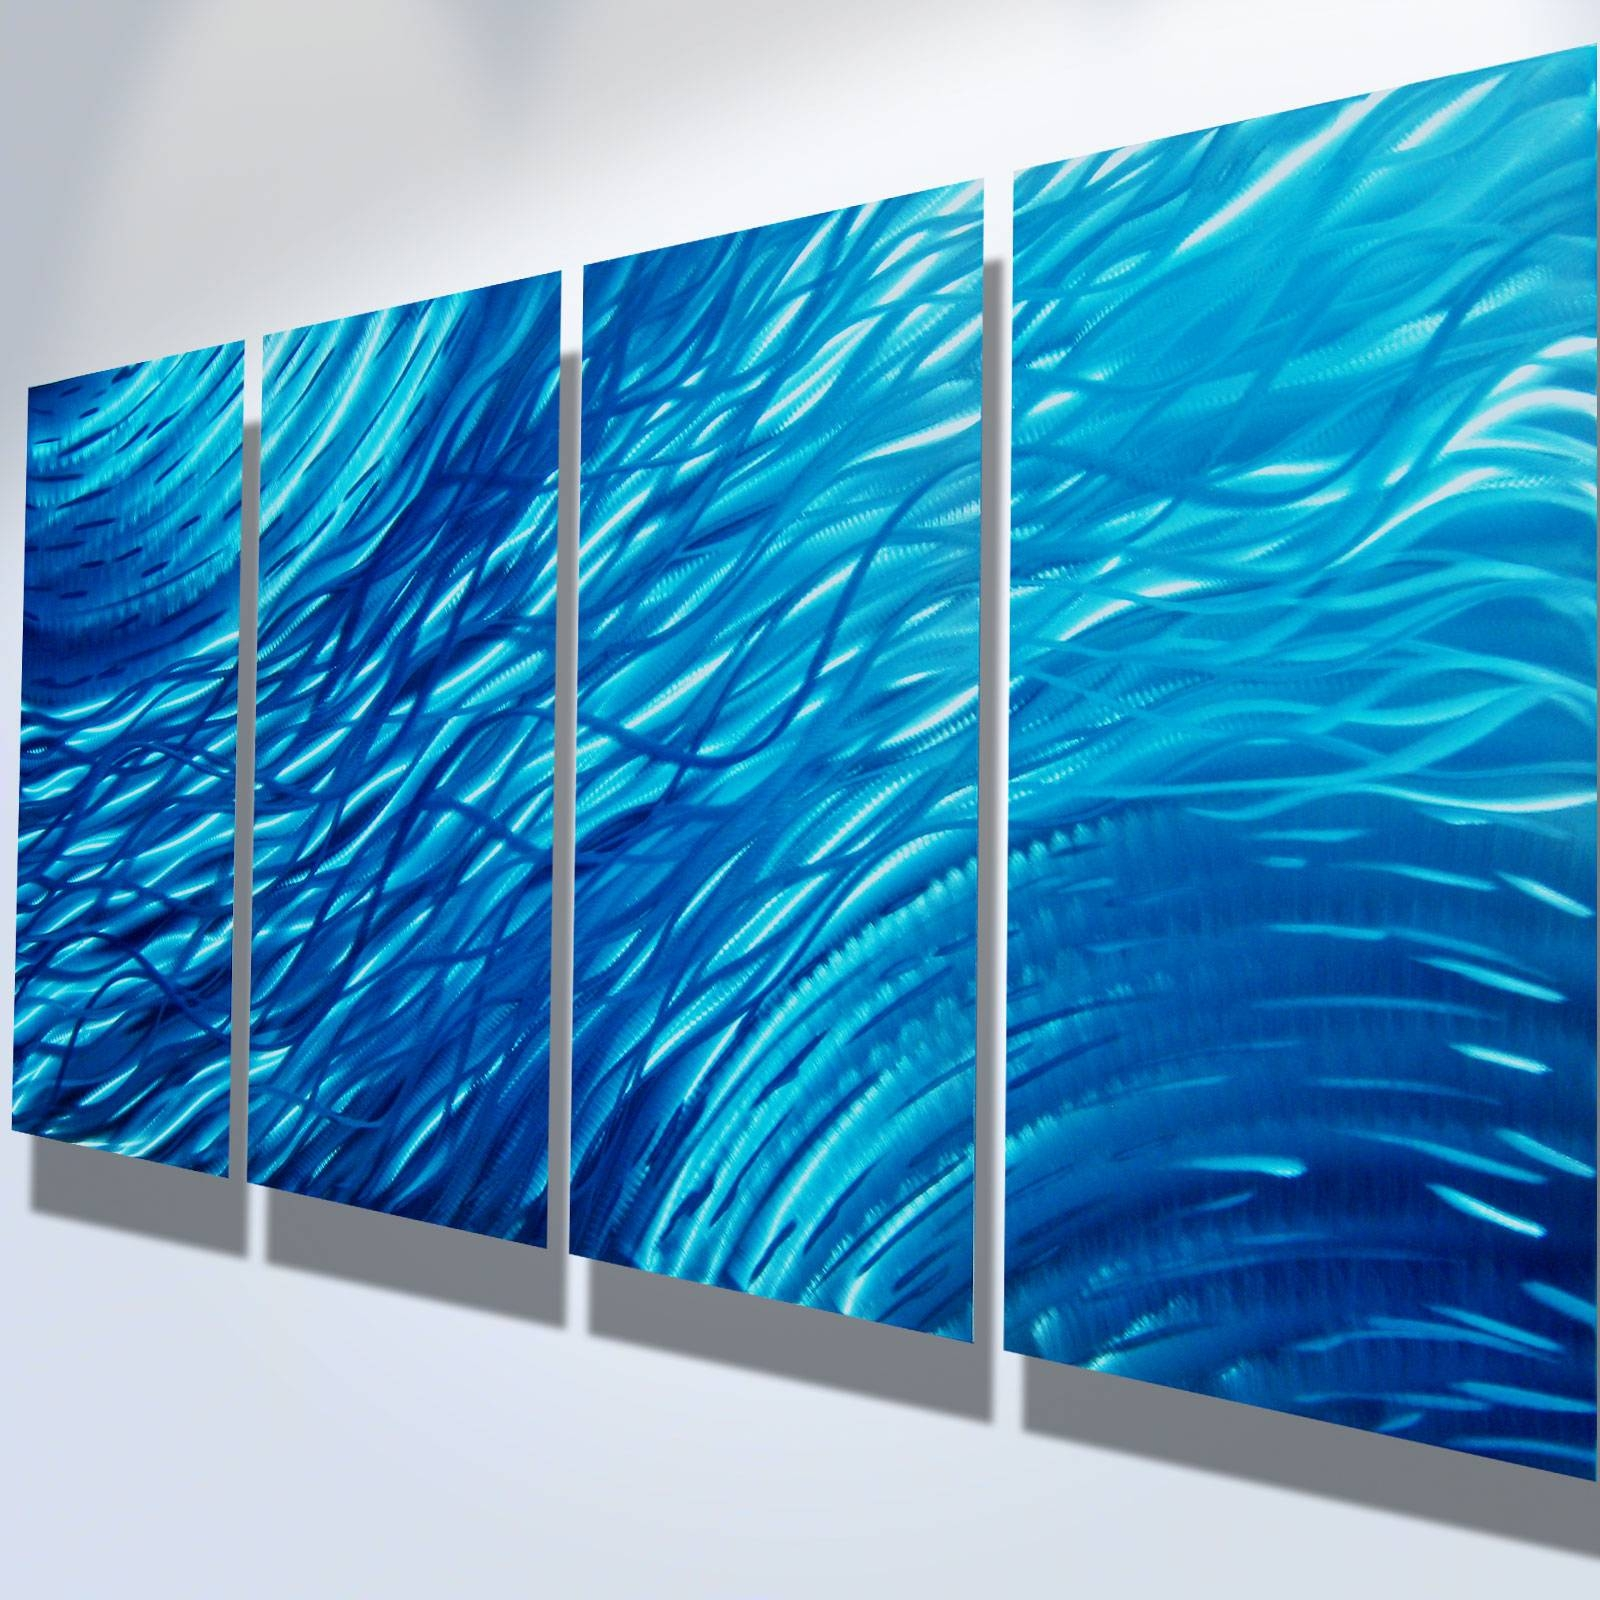 Ocean  Metal Wall Art Abstract Contemporary Modern Decor Intended For Most Recently Released Blue Metal Wall Art (View 13 of 20)